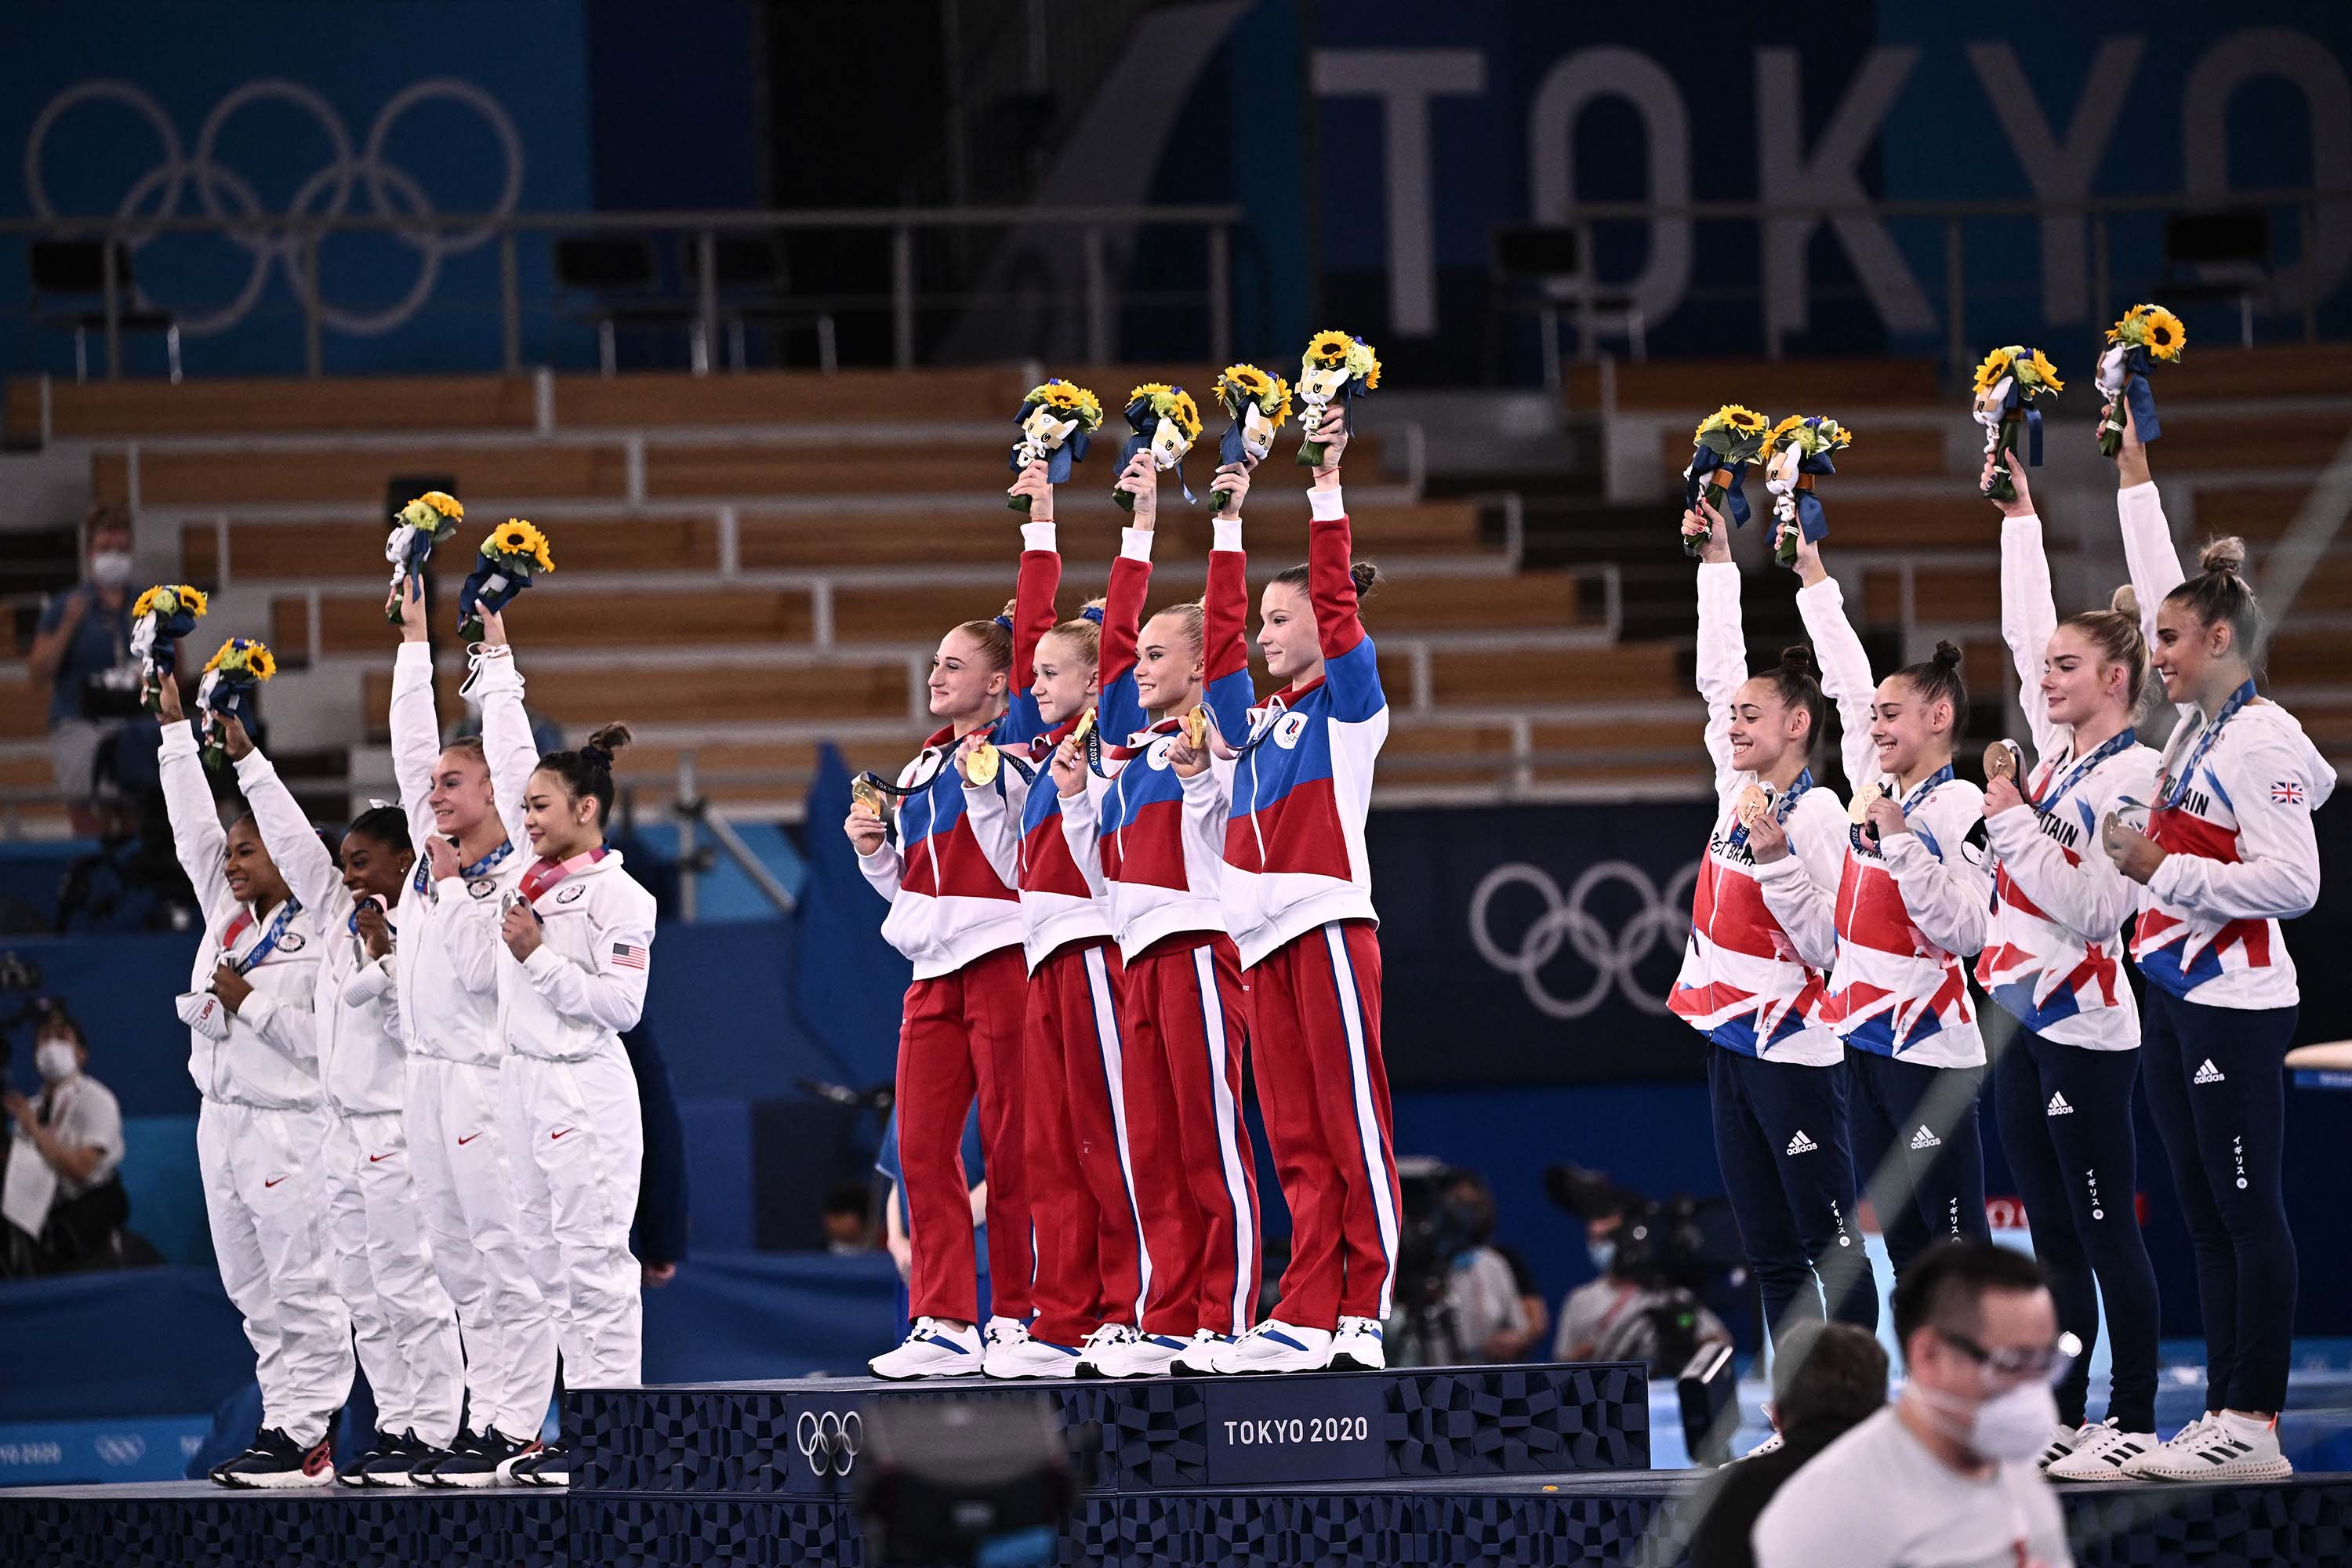 From left: Team USA (silver), Team ROC (gold) and Team Great Britain (bronze) pose during the podium ceremony of the artistic gymnastics women's team final on July 27.